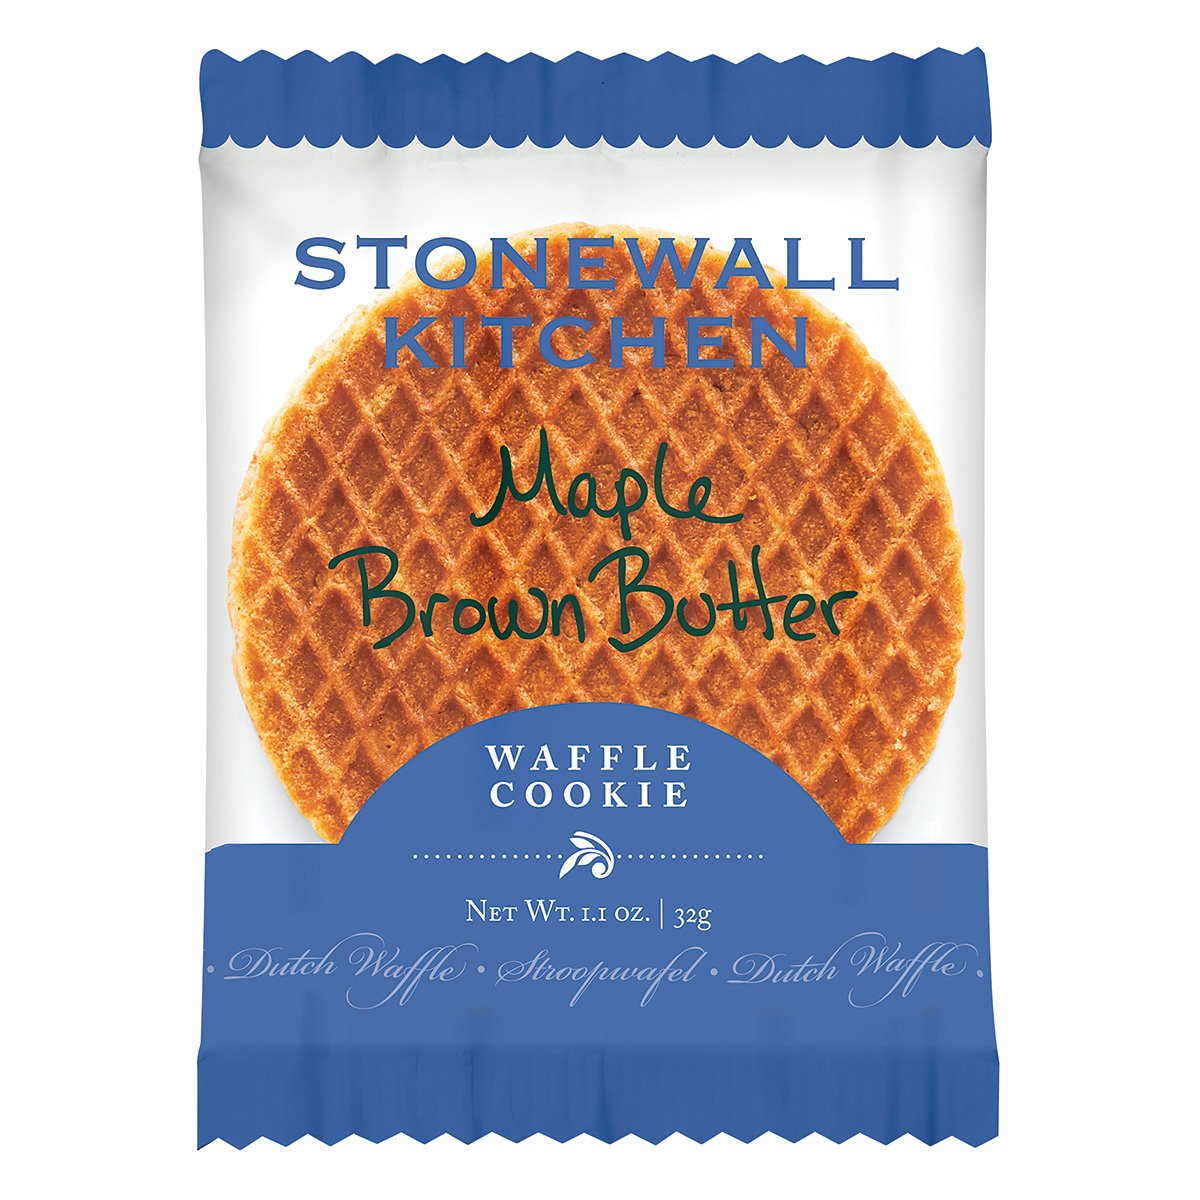 Stonewall Kitchen Maple Brown Butter Waffle Cookie, 1.1 ounce by Stonewall Kitchen (Image #1)